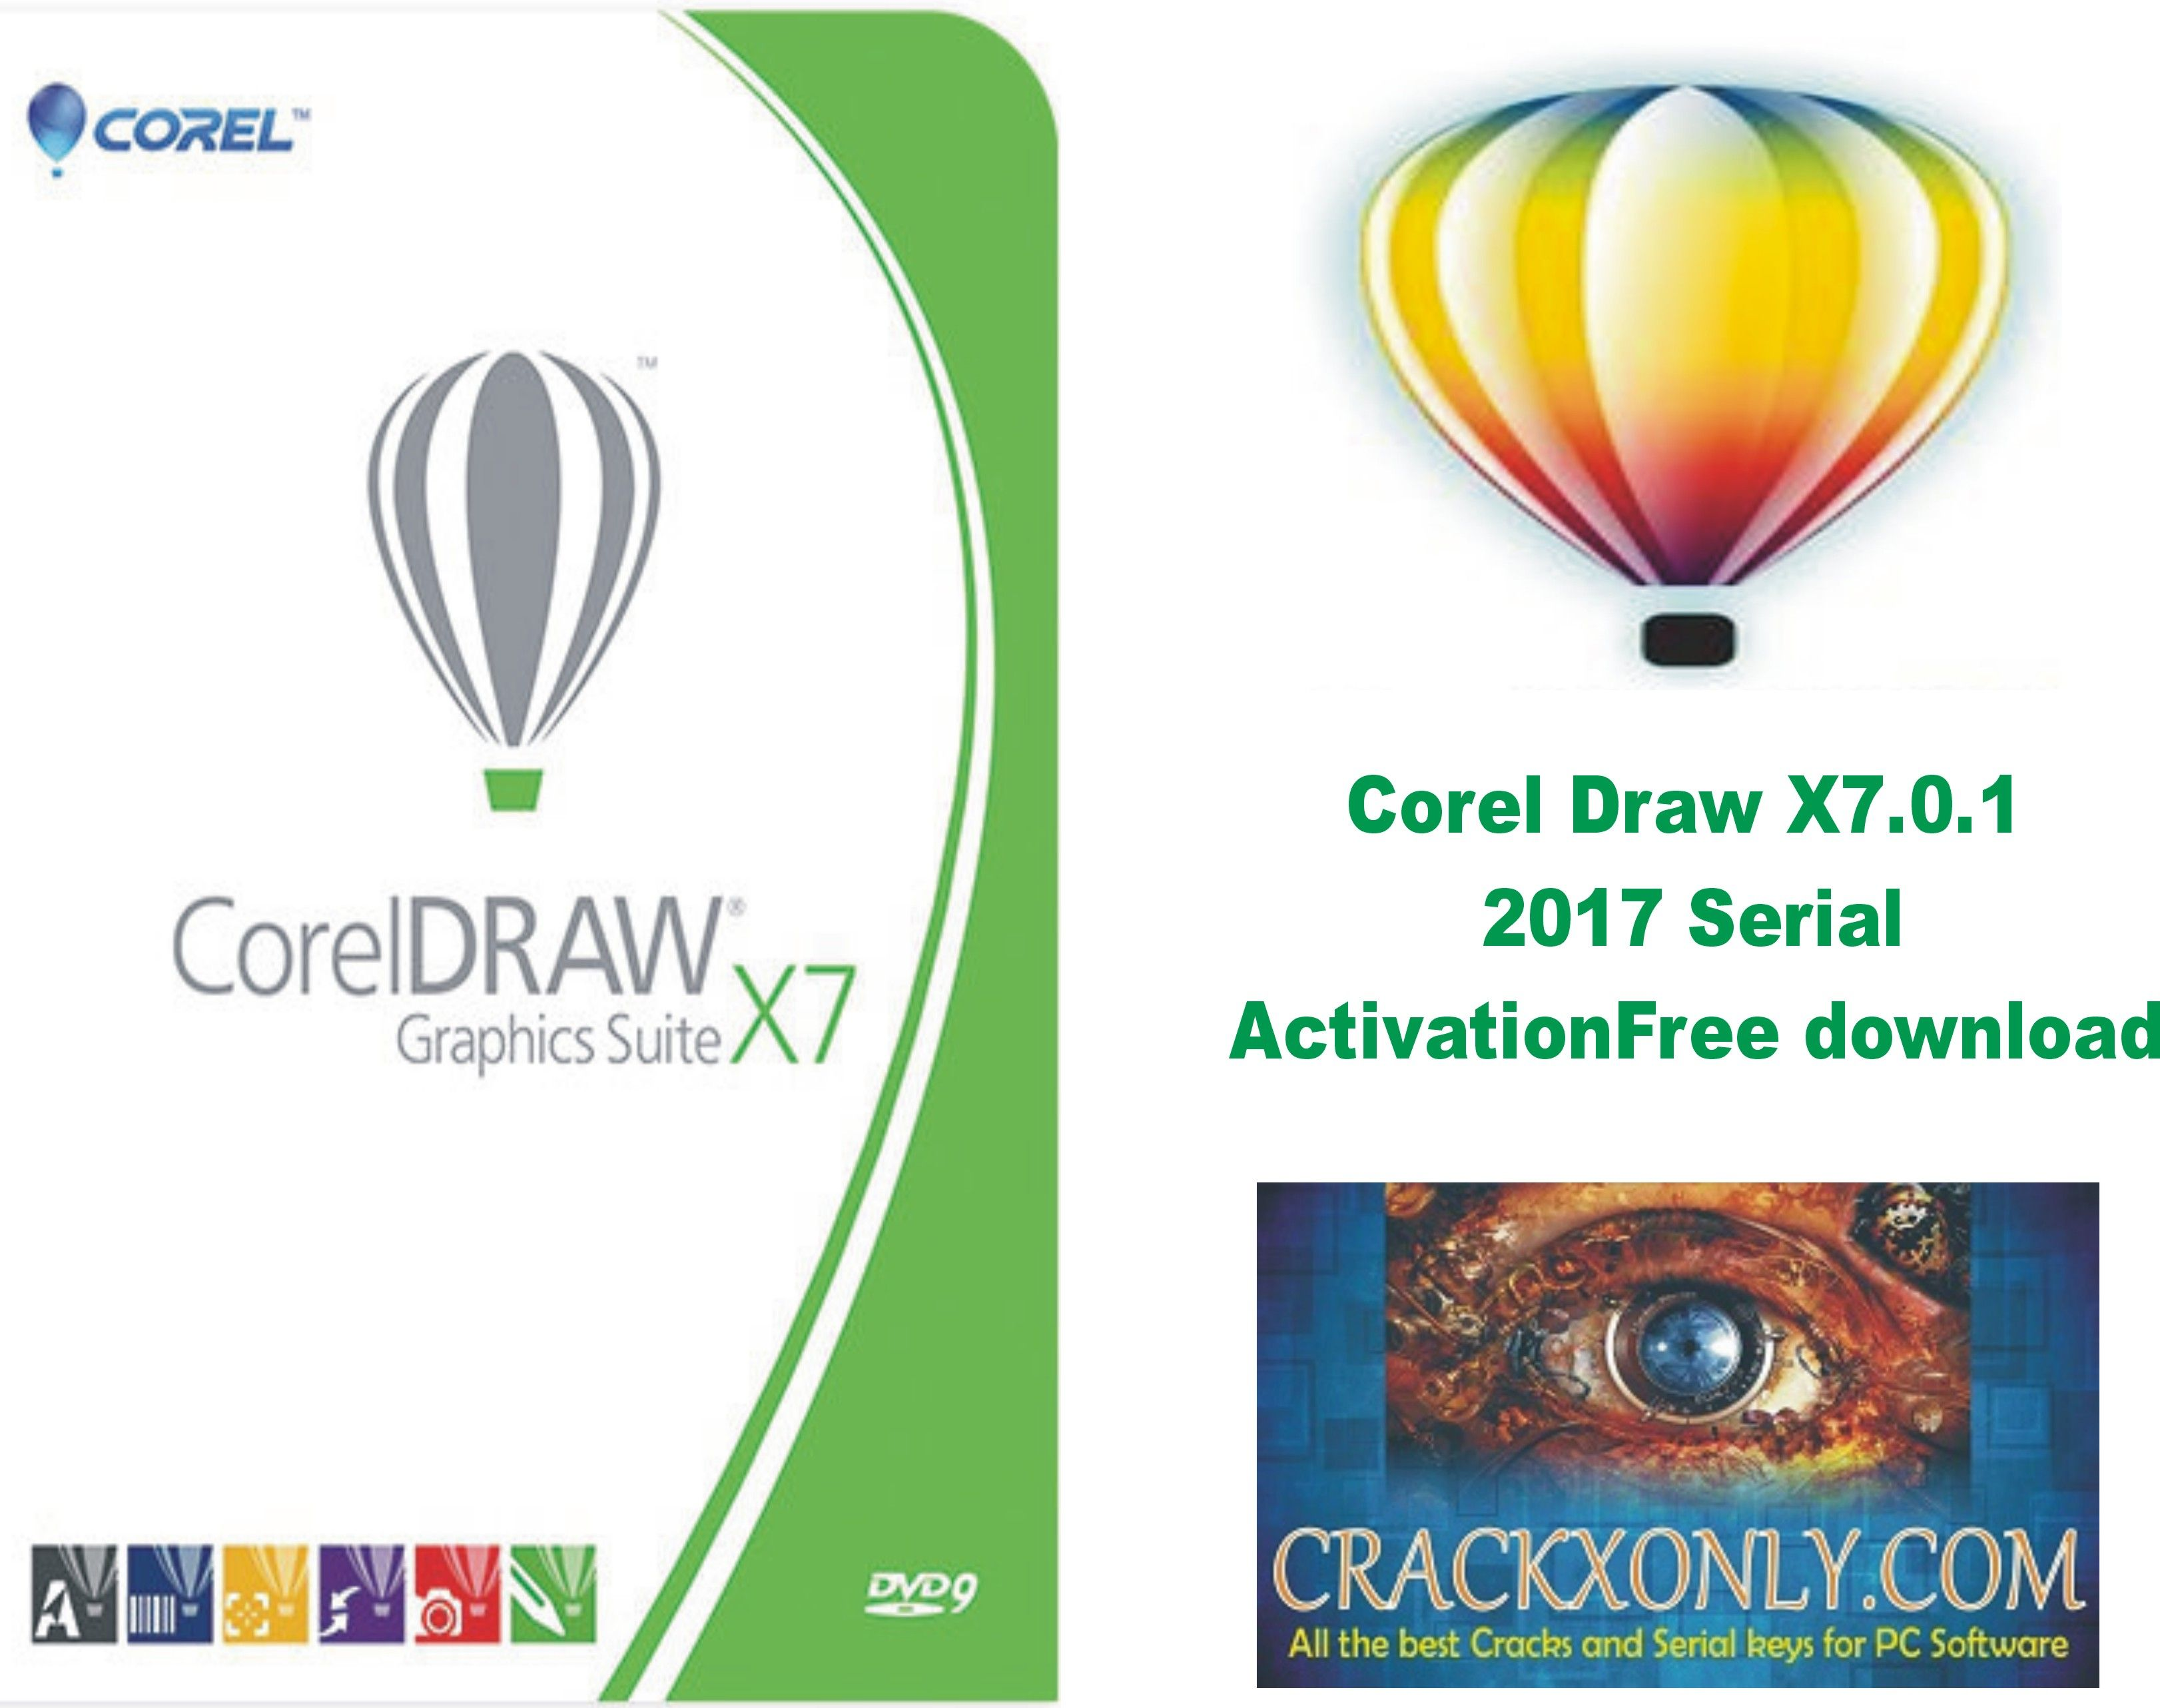 Corel Draw X7 0 1 2017 Serial Activation Free download